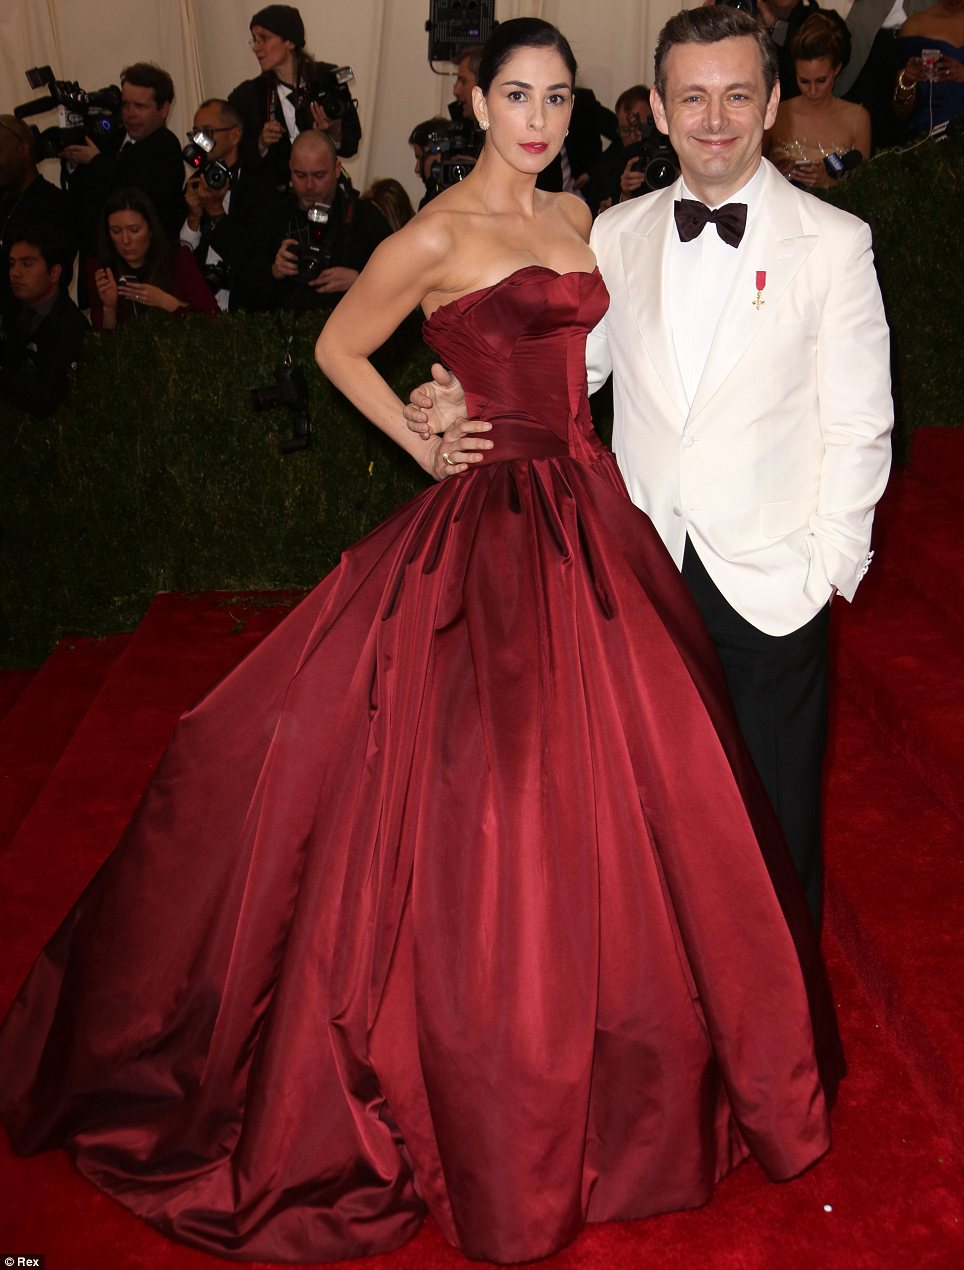 Best Dressed at the New York Met Gala | The Lady in Waiting